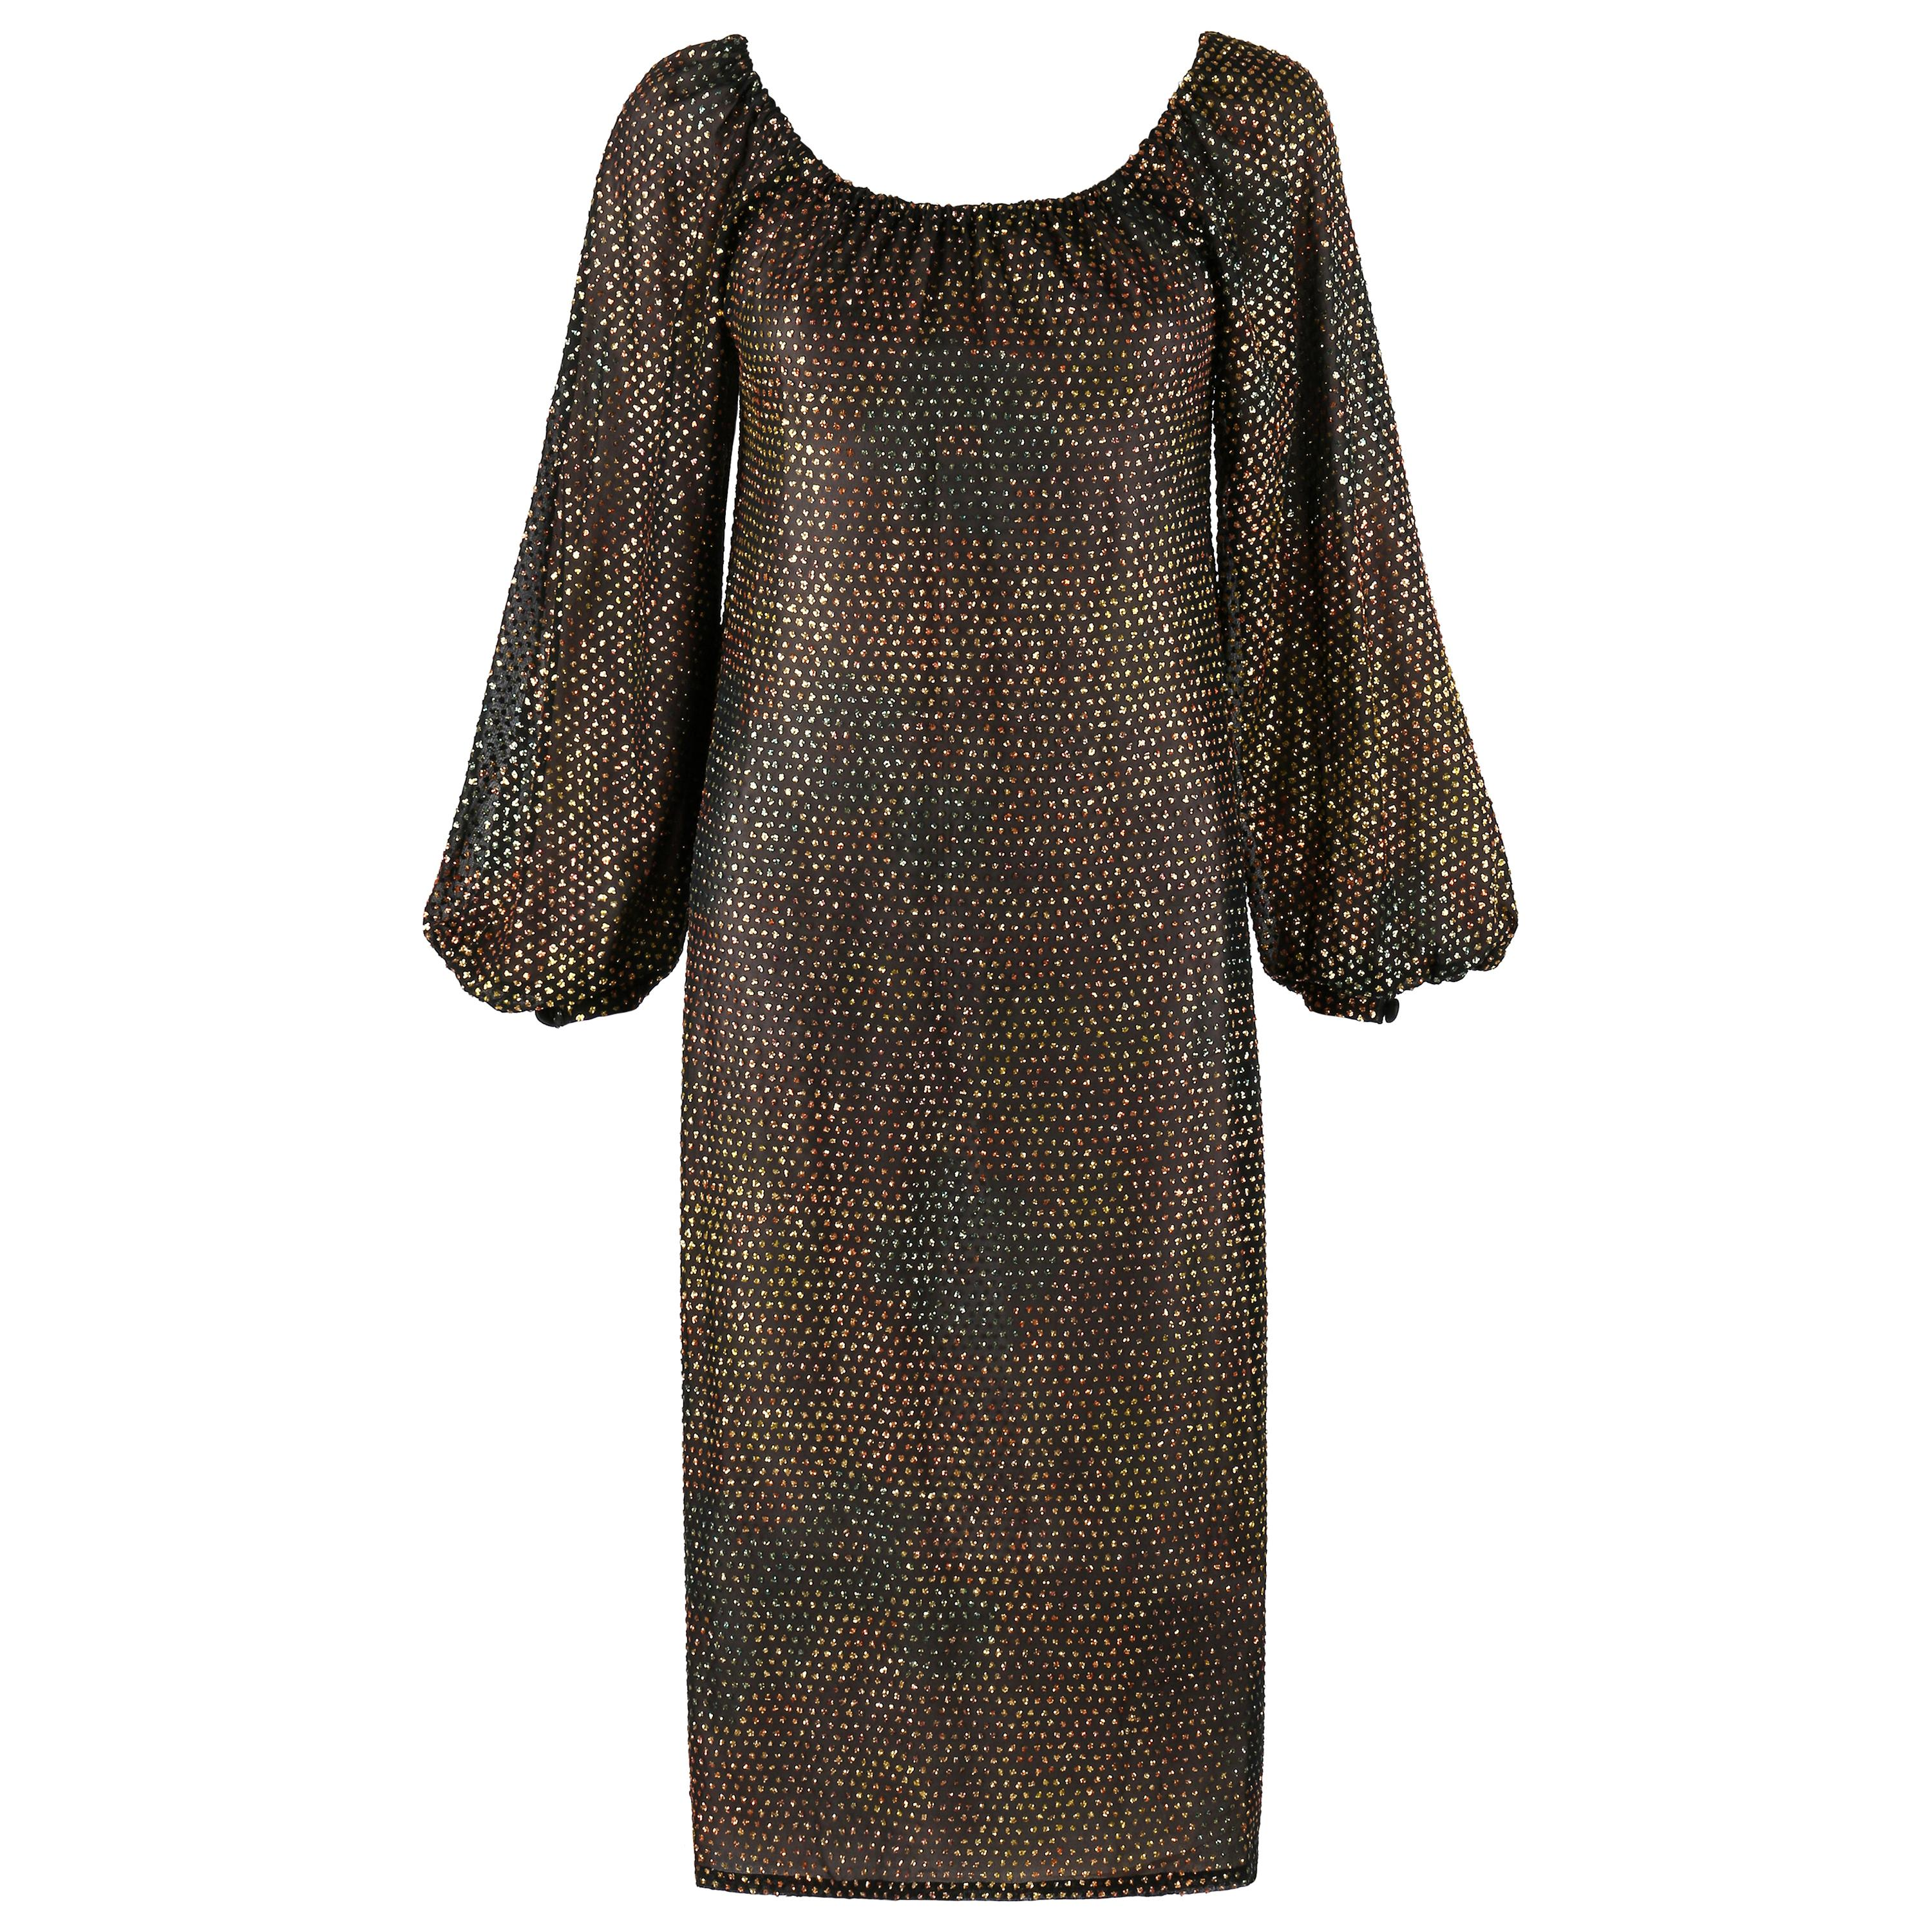 GIVENCHY HAUTE COUTURE c.1970s Black Gold-Rainbow Bishop Sleeve Shift Dress